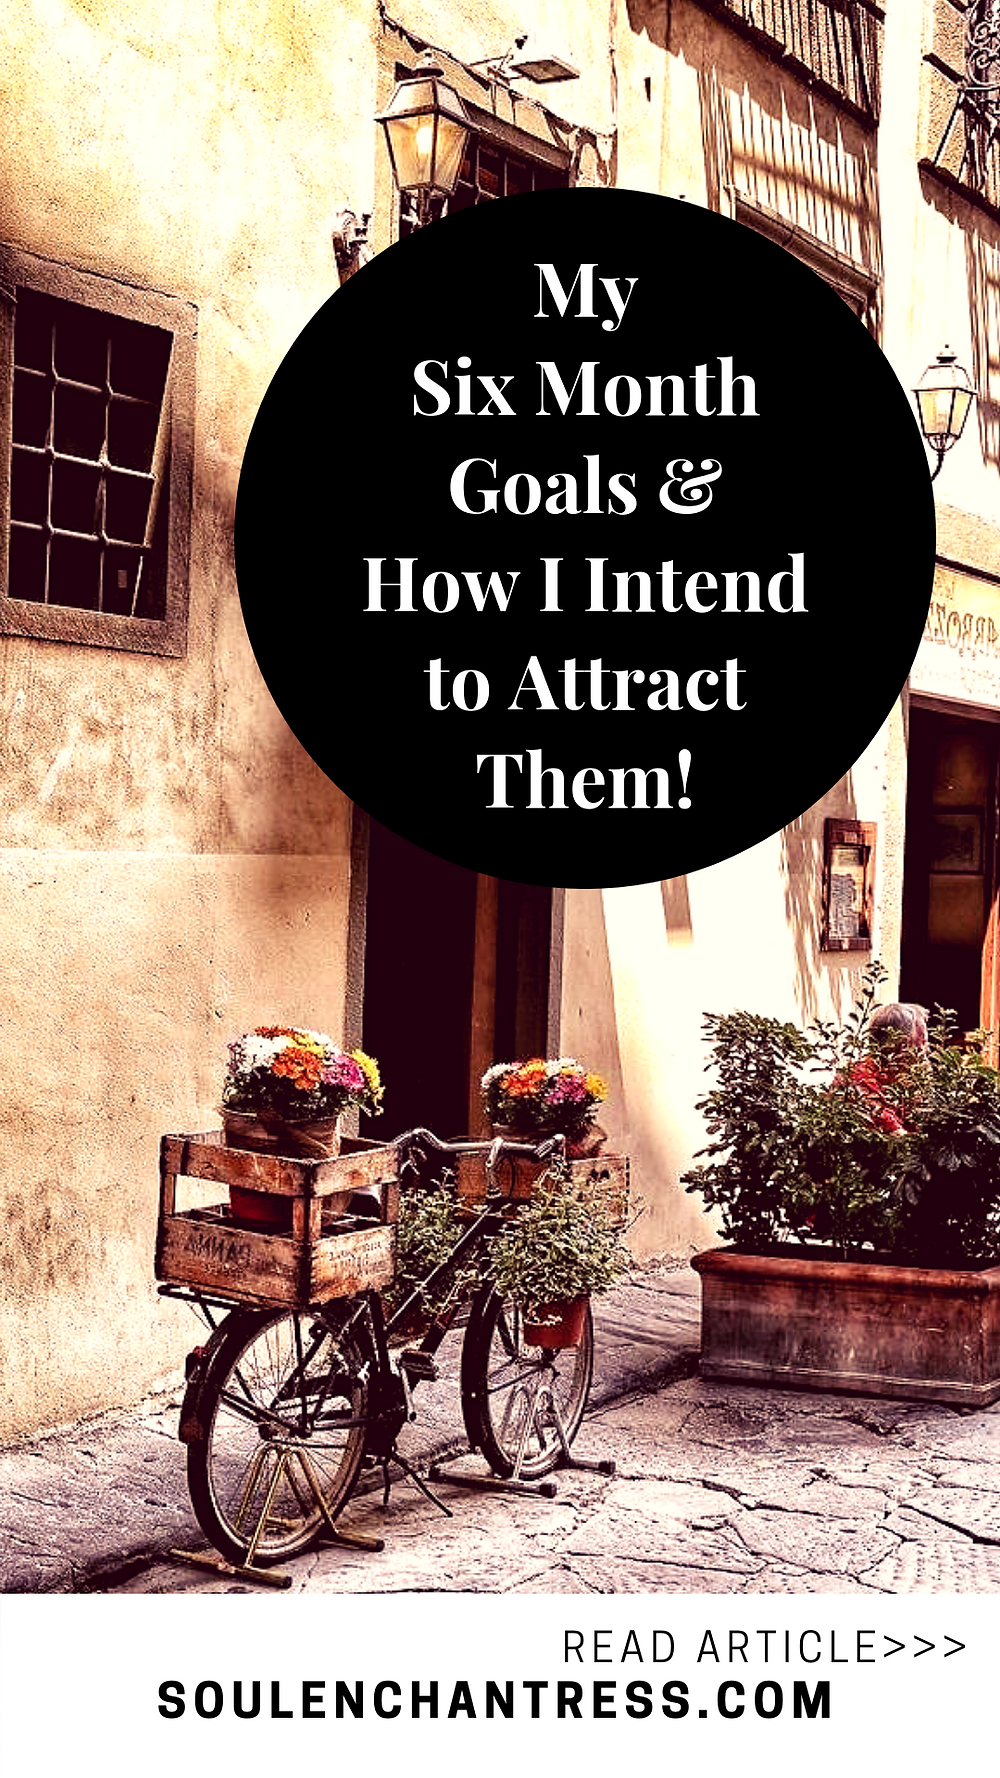 how to set goals, how to achieve goals, my six month goals and how I intend to achieve them, soul enchantress, attract love, attract money, how to attract your desires, paris, florence, jimmy choo, laboutin